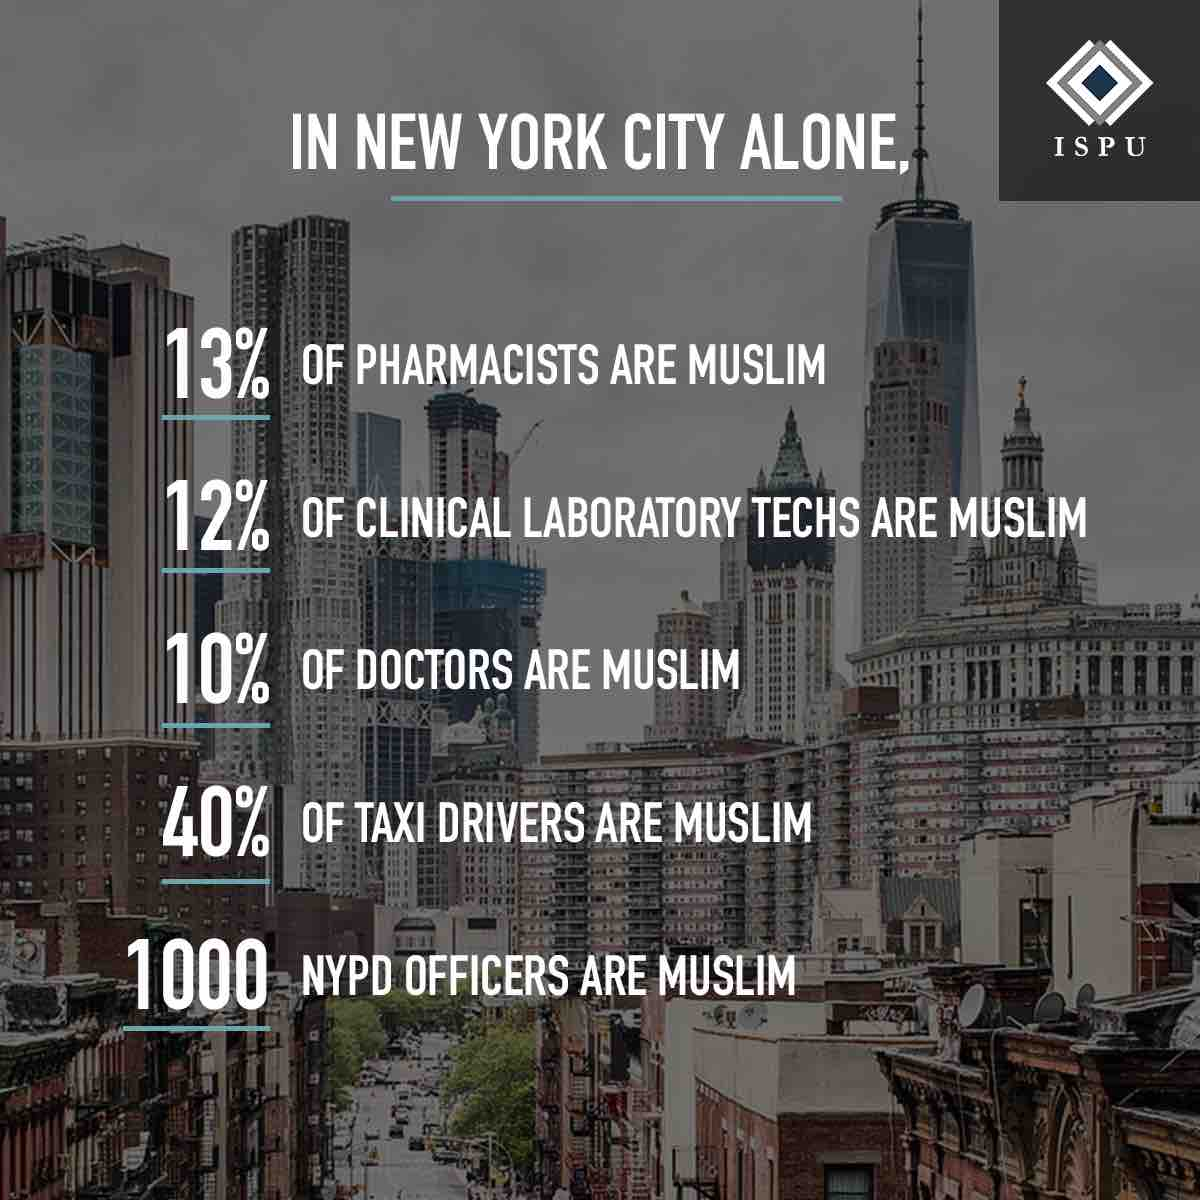 In NYC alone, 13% of pharmacists are Muslim, 12% of clinical lab techs are Muslim, 10% of doctors are Muslim, 40% of taxi drivers are Muslim, and 1000 NYPD officers are Muslim.